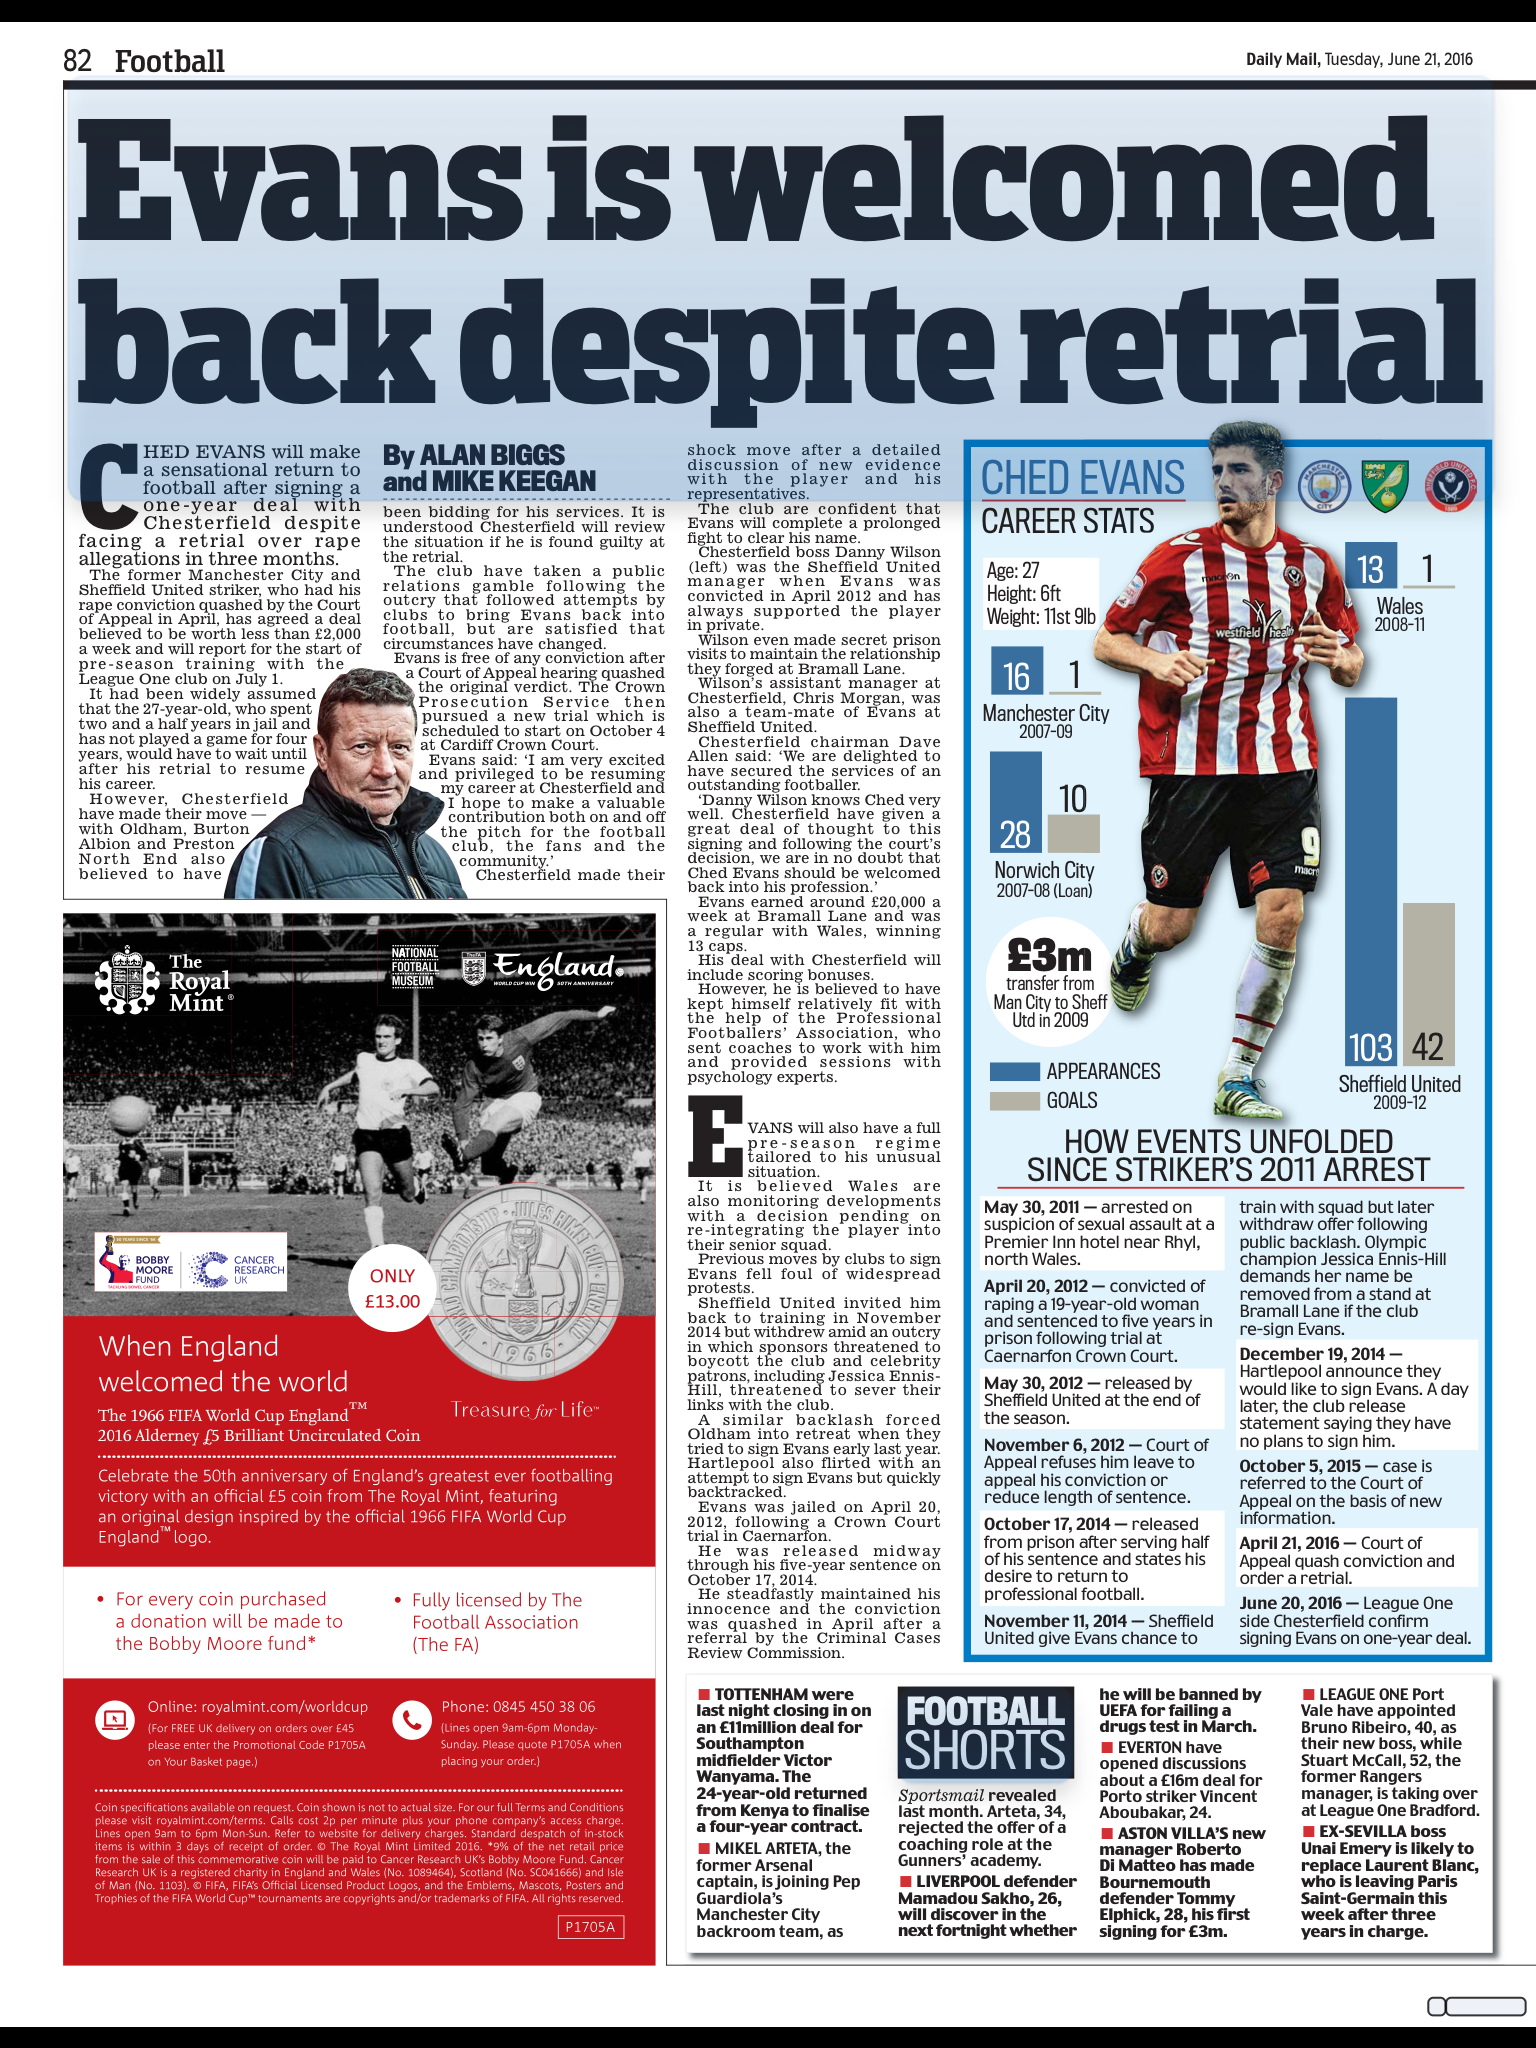 BRAVE OR FOOLISH:  THE DAILY MAIL REPORTS CHED EVANS' RETURN